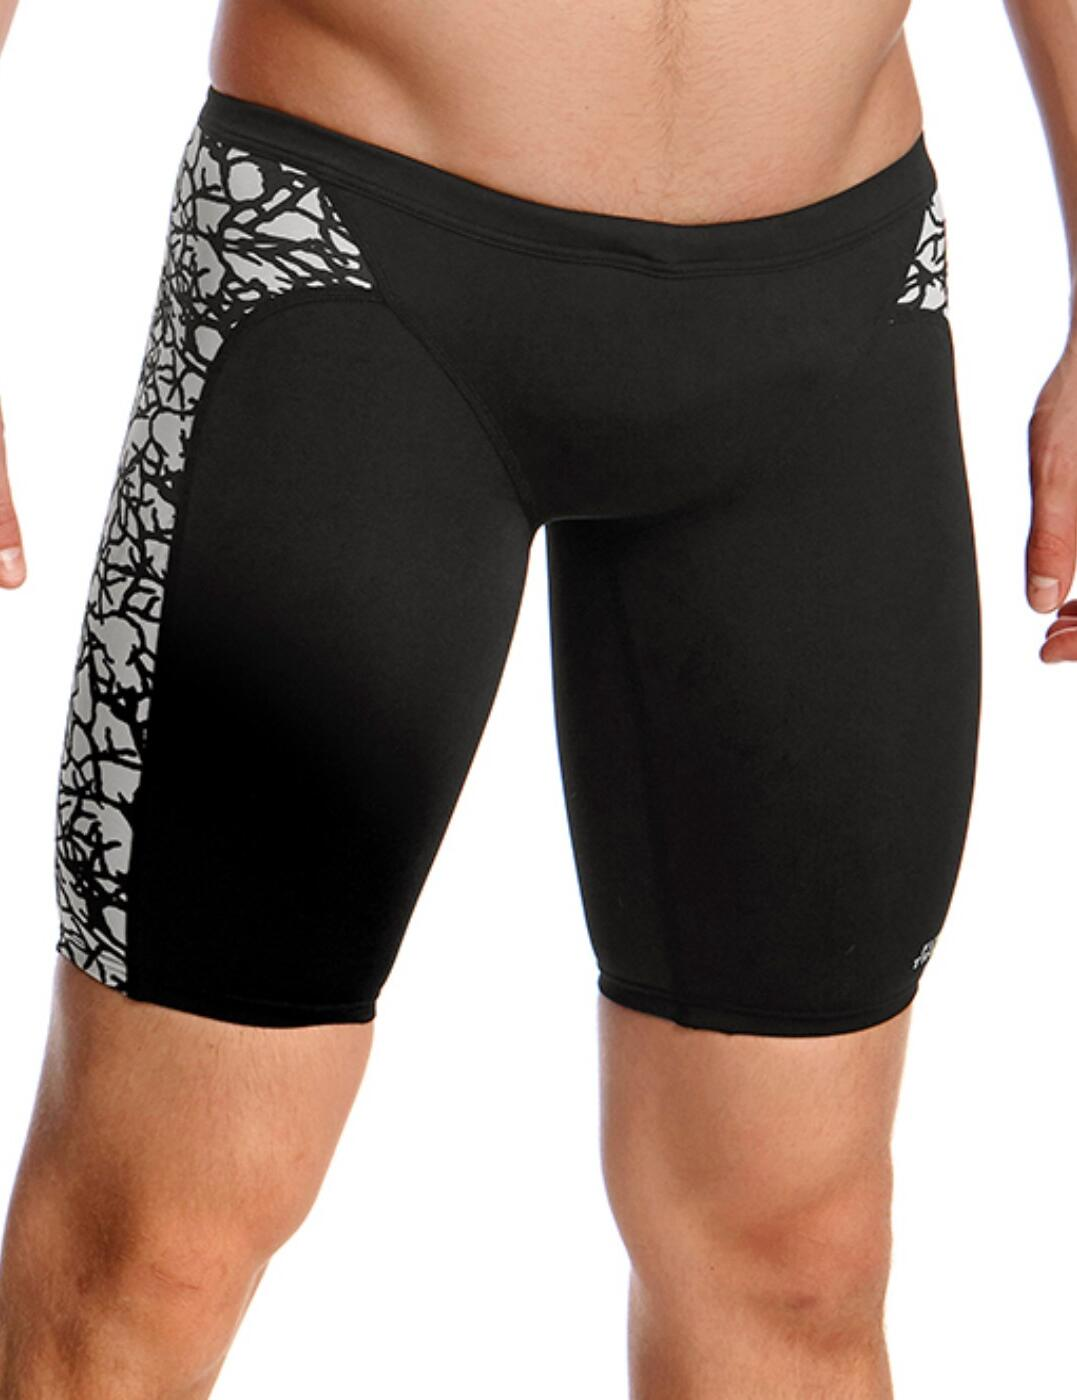 FT37M01966 Funky Trunks Mens Training Jammers Bleached Coral - FT37M01966 Bleached Coral